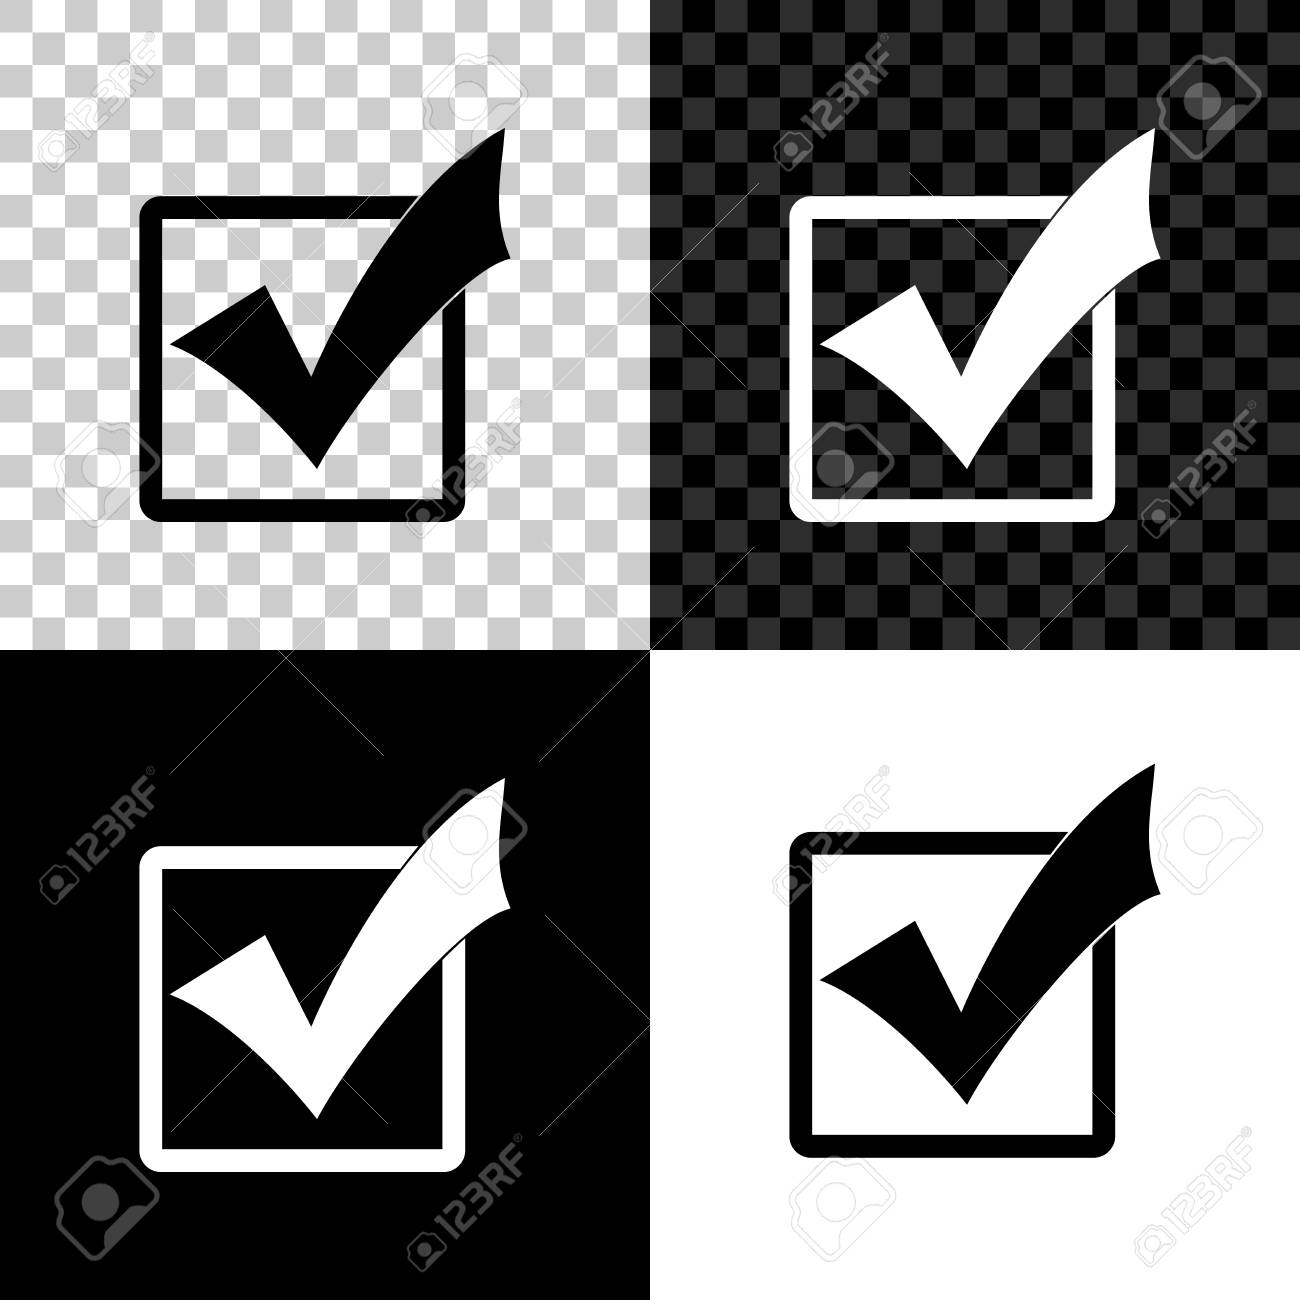 Check mark in a box icon isolated on black, white and transparent